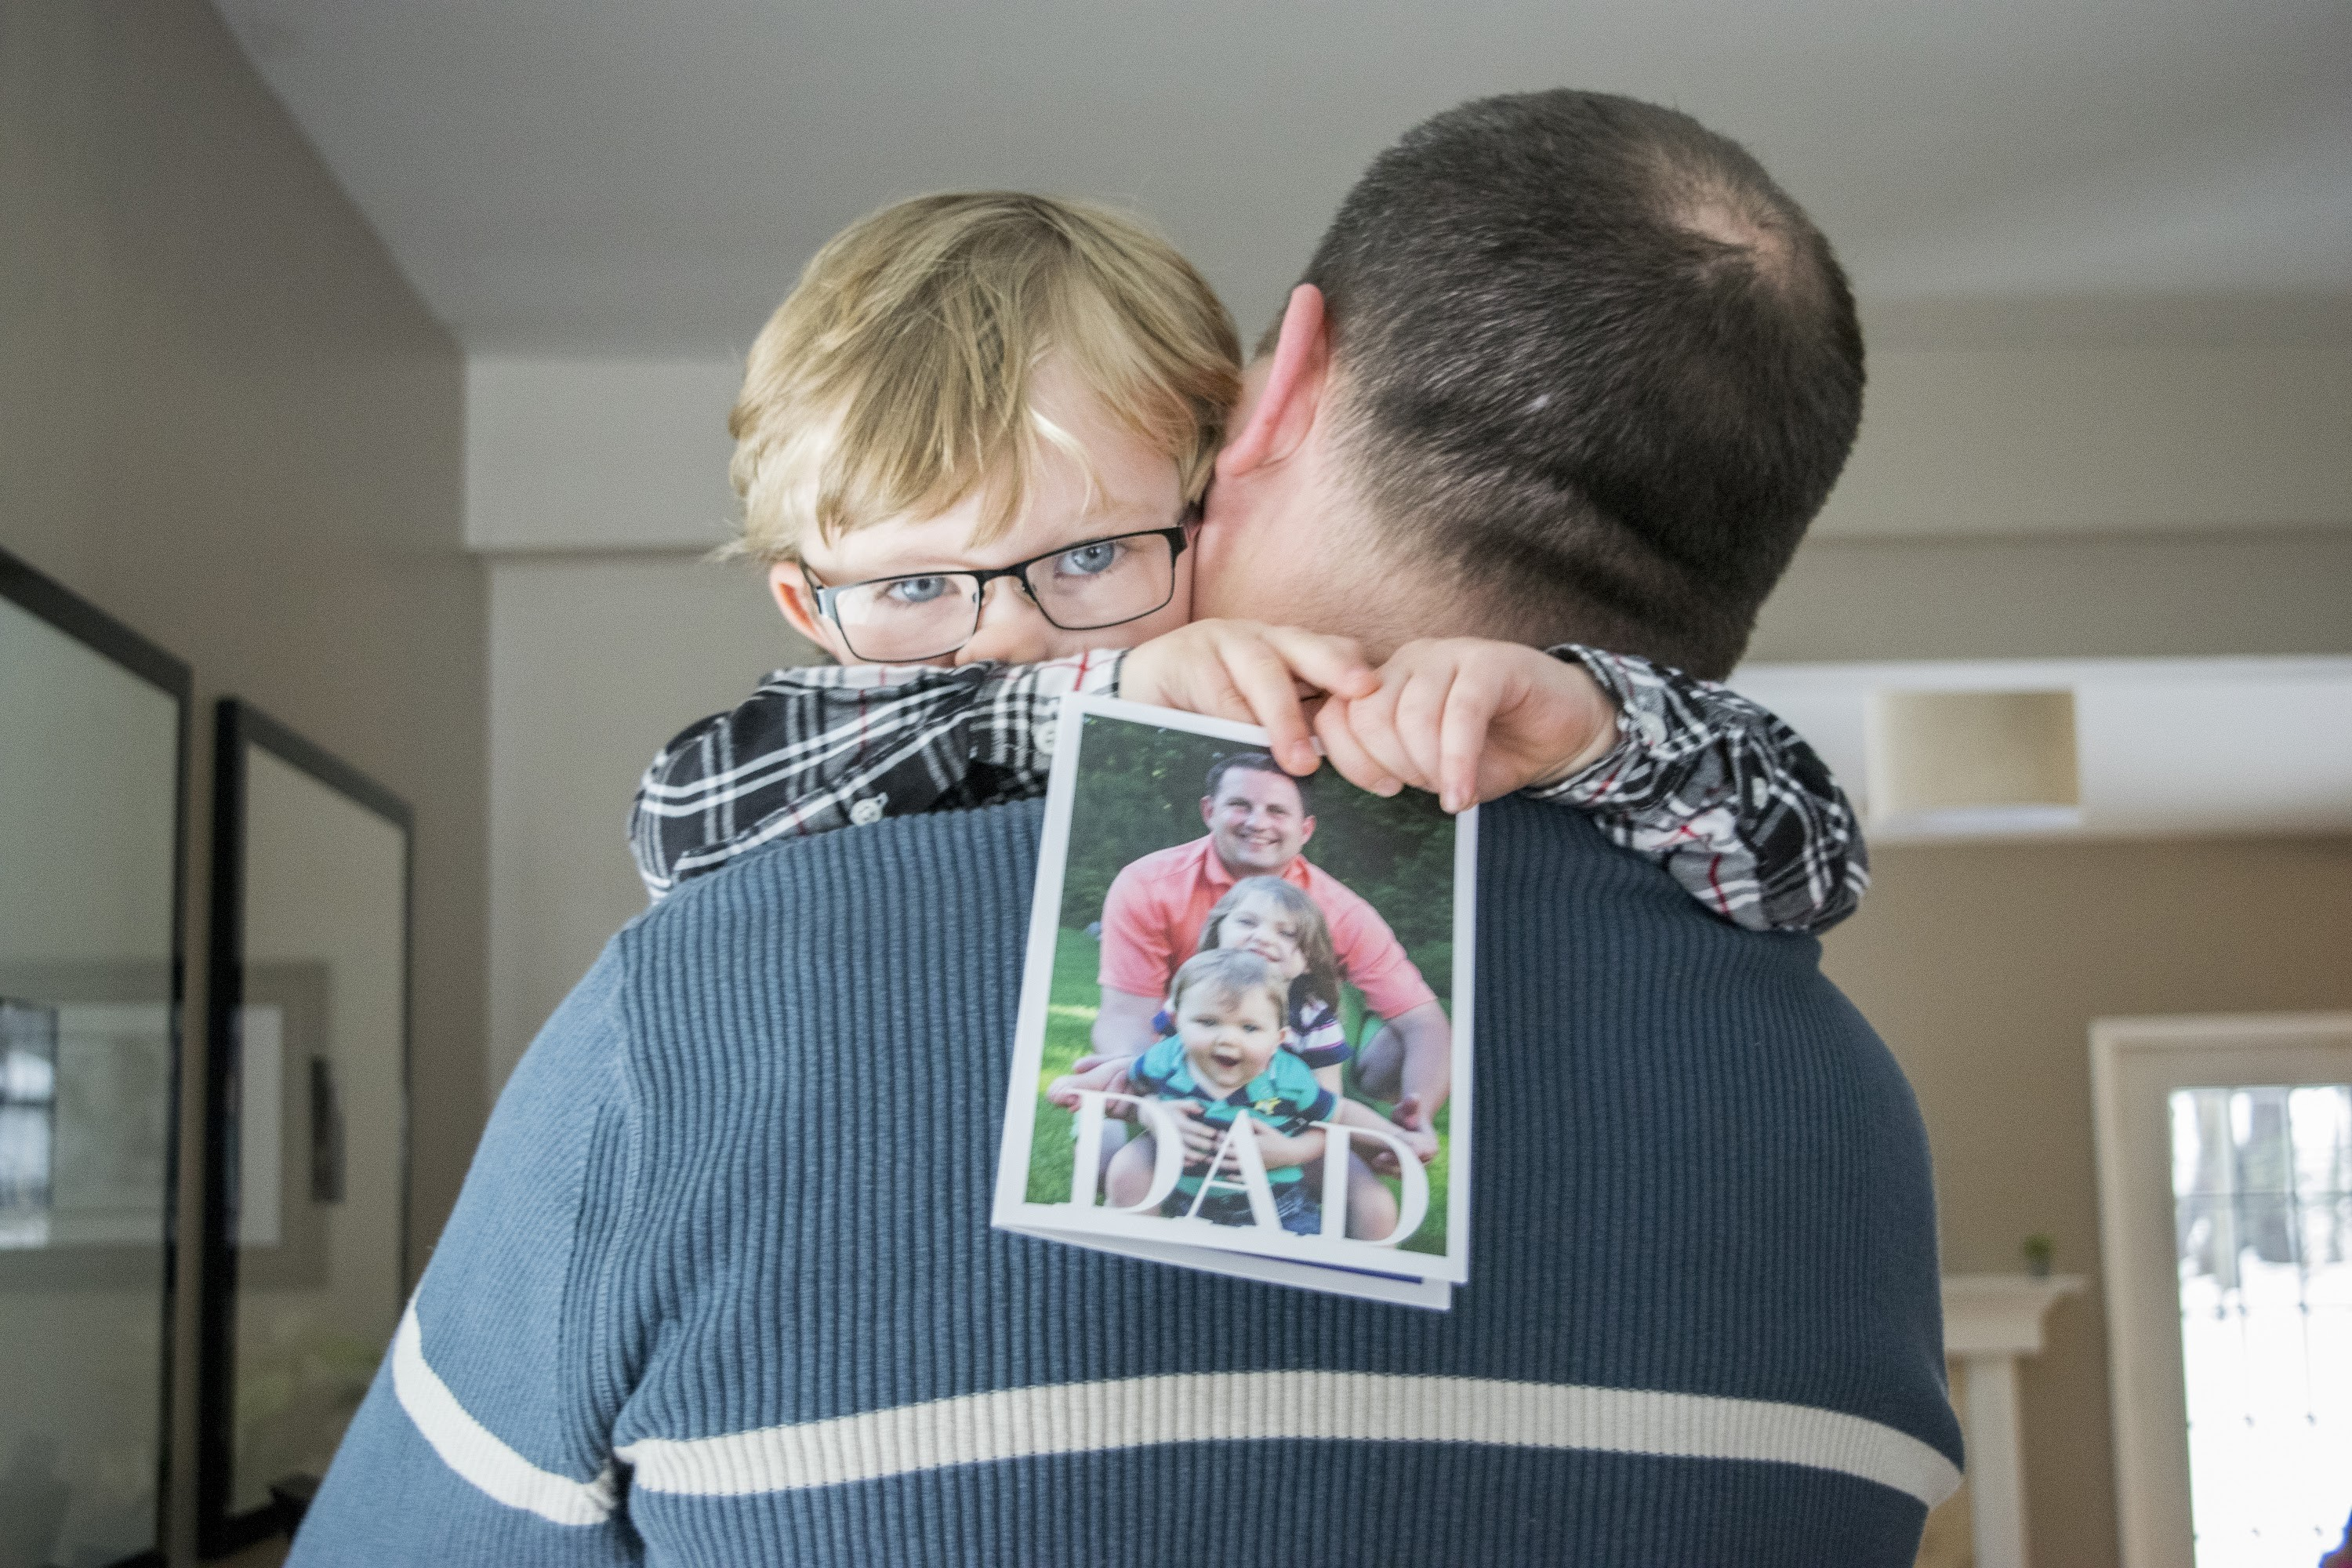 Father's Day 2020 Featured Card